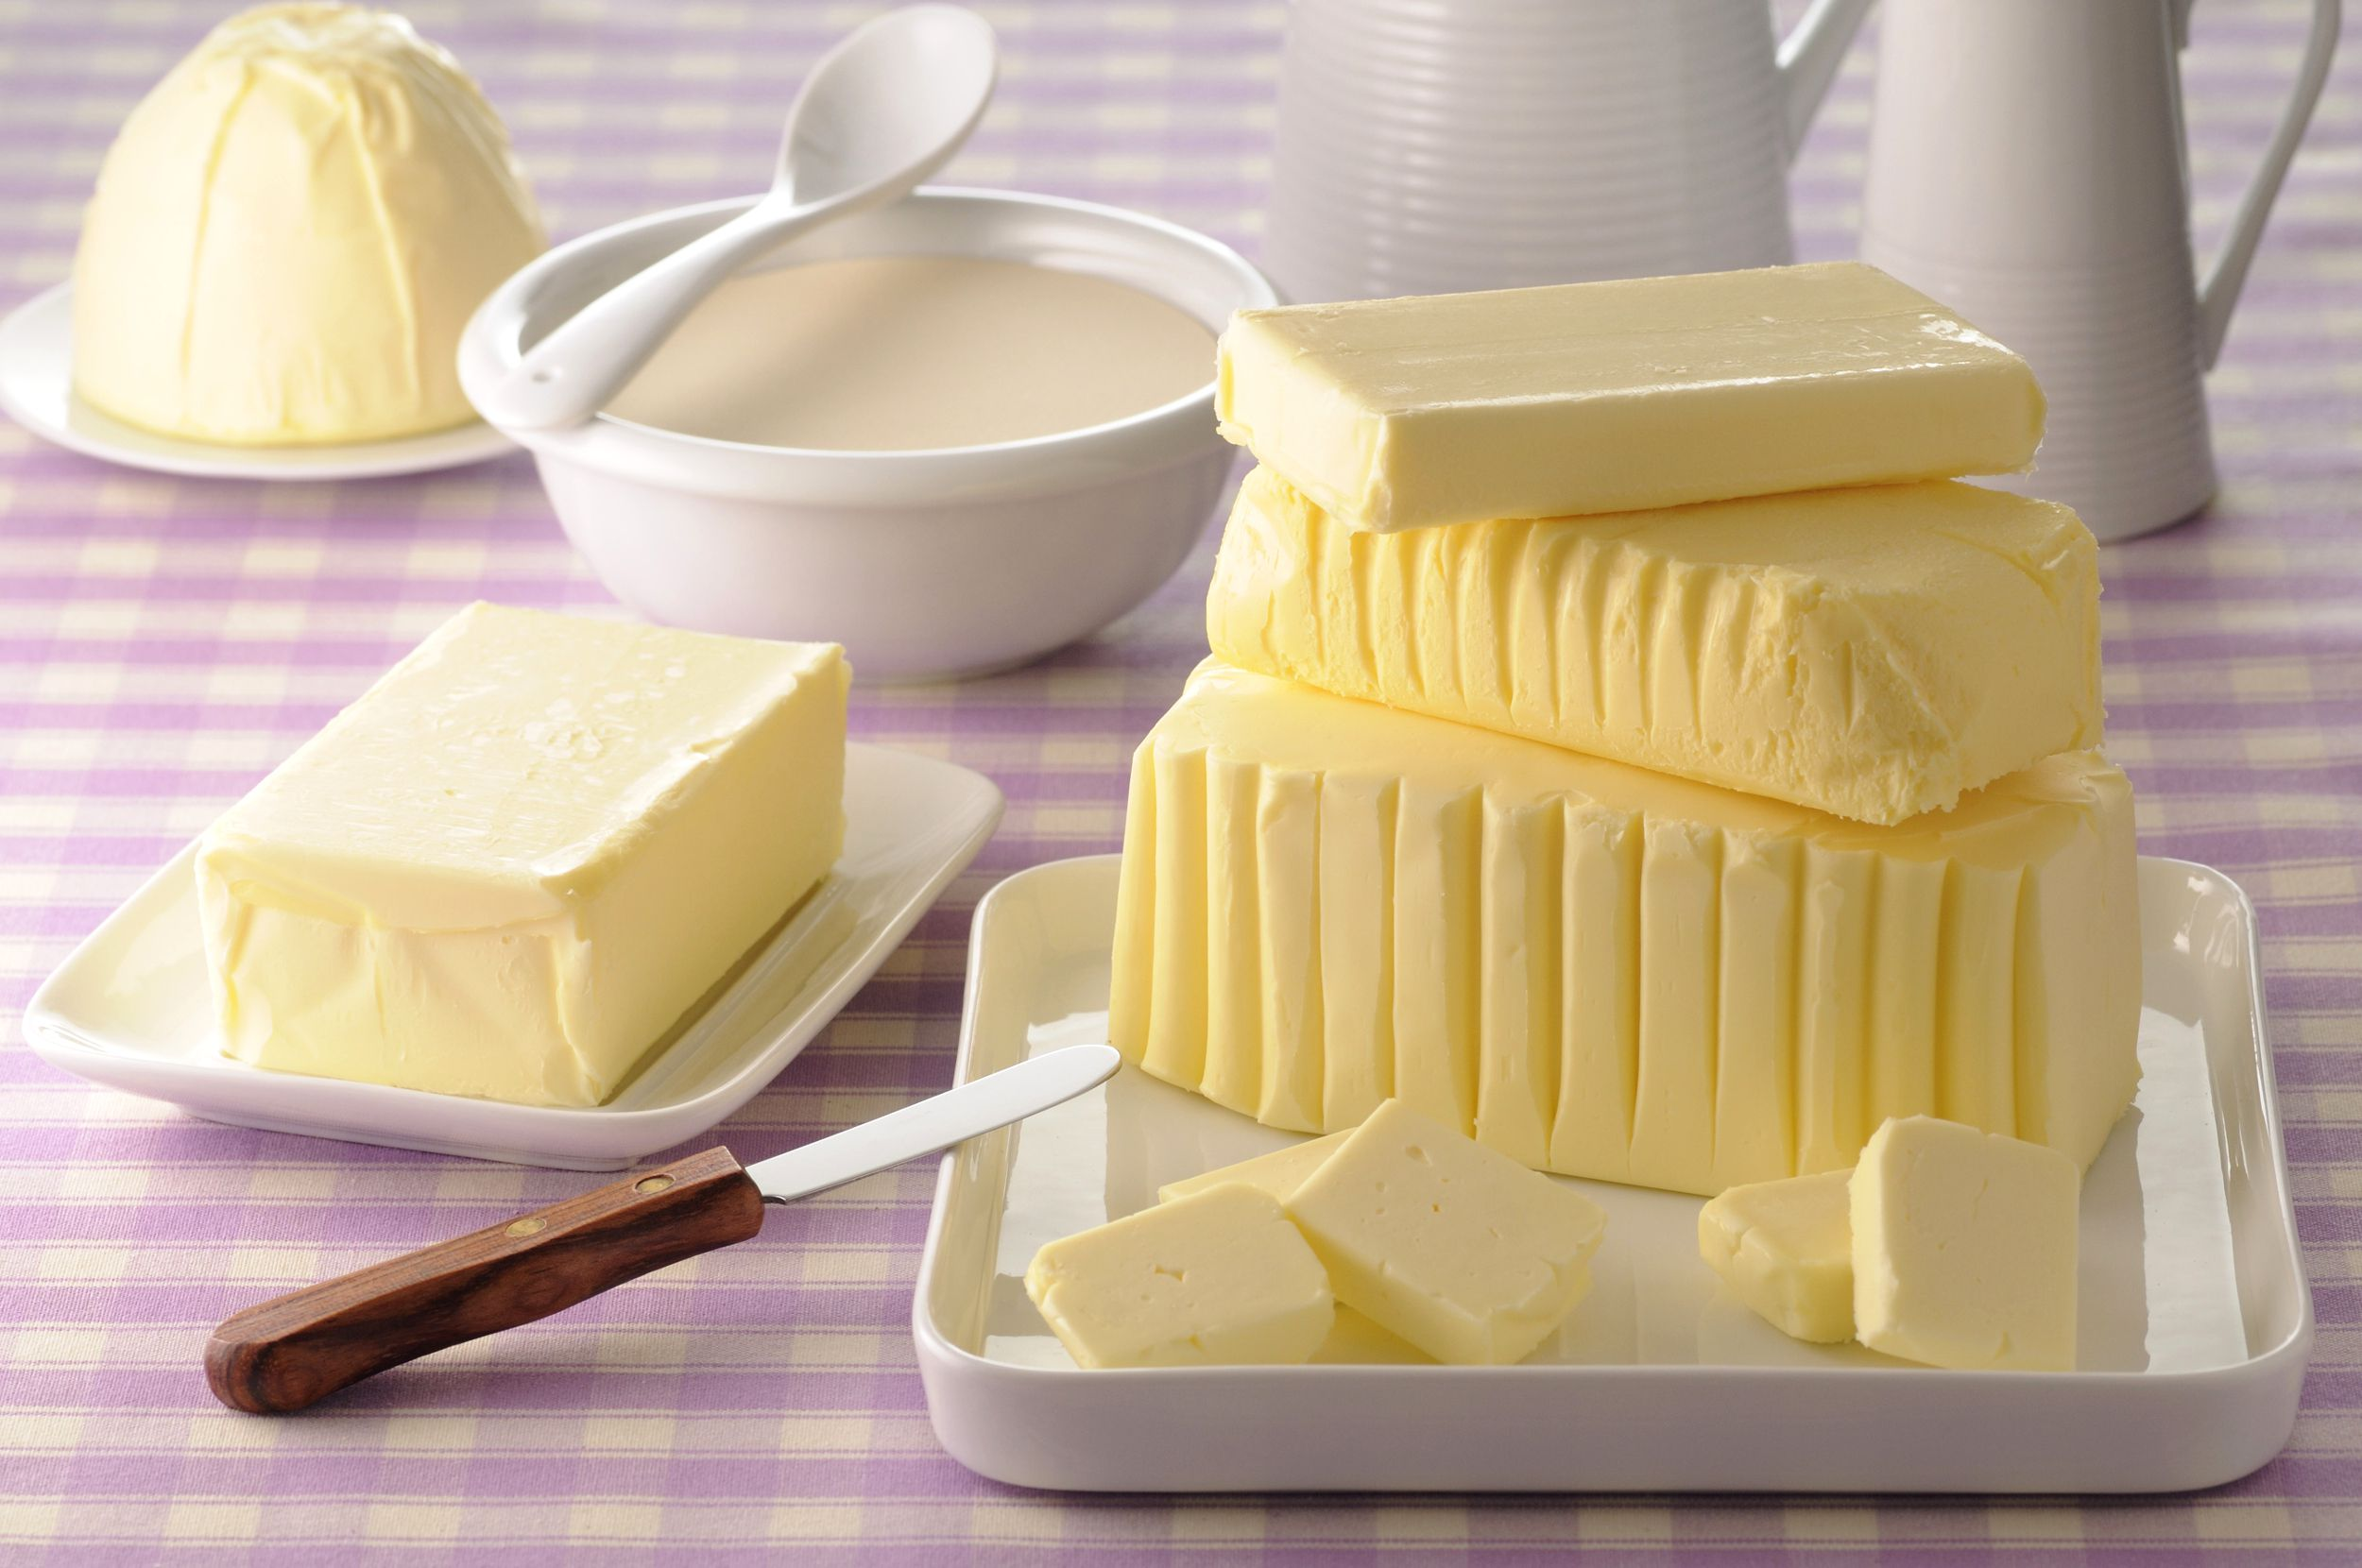 physicochemical events in production of butter and margarine Butter made from pasteurized fresh cream is called sweet cream butter production of sweet cream and it is still the case today that more margarine than butter is where cow and yak butter can be buried for decades, and is used at events such as weddings yak butter is a.